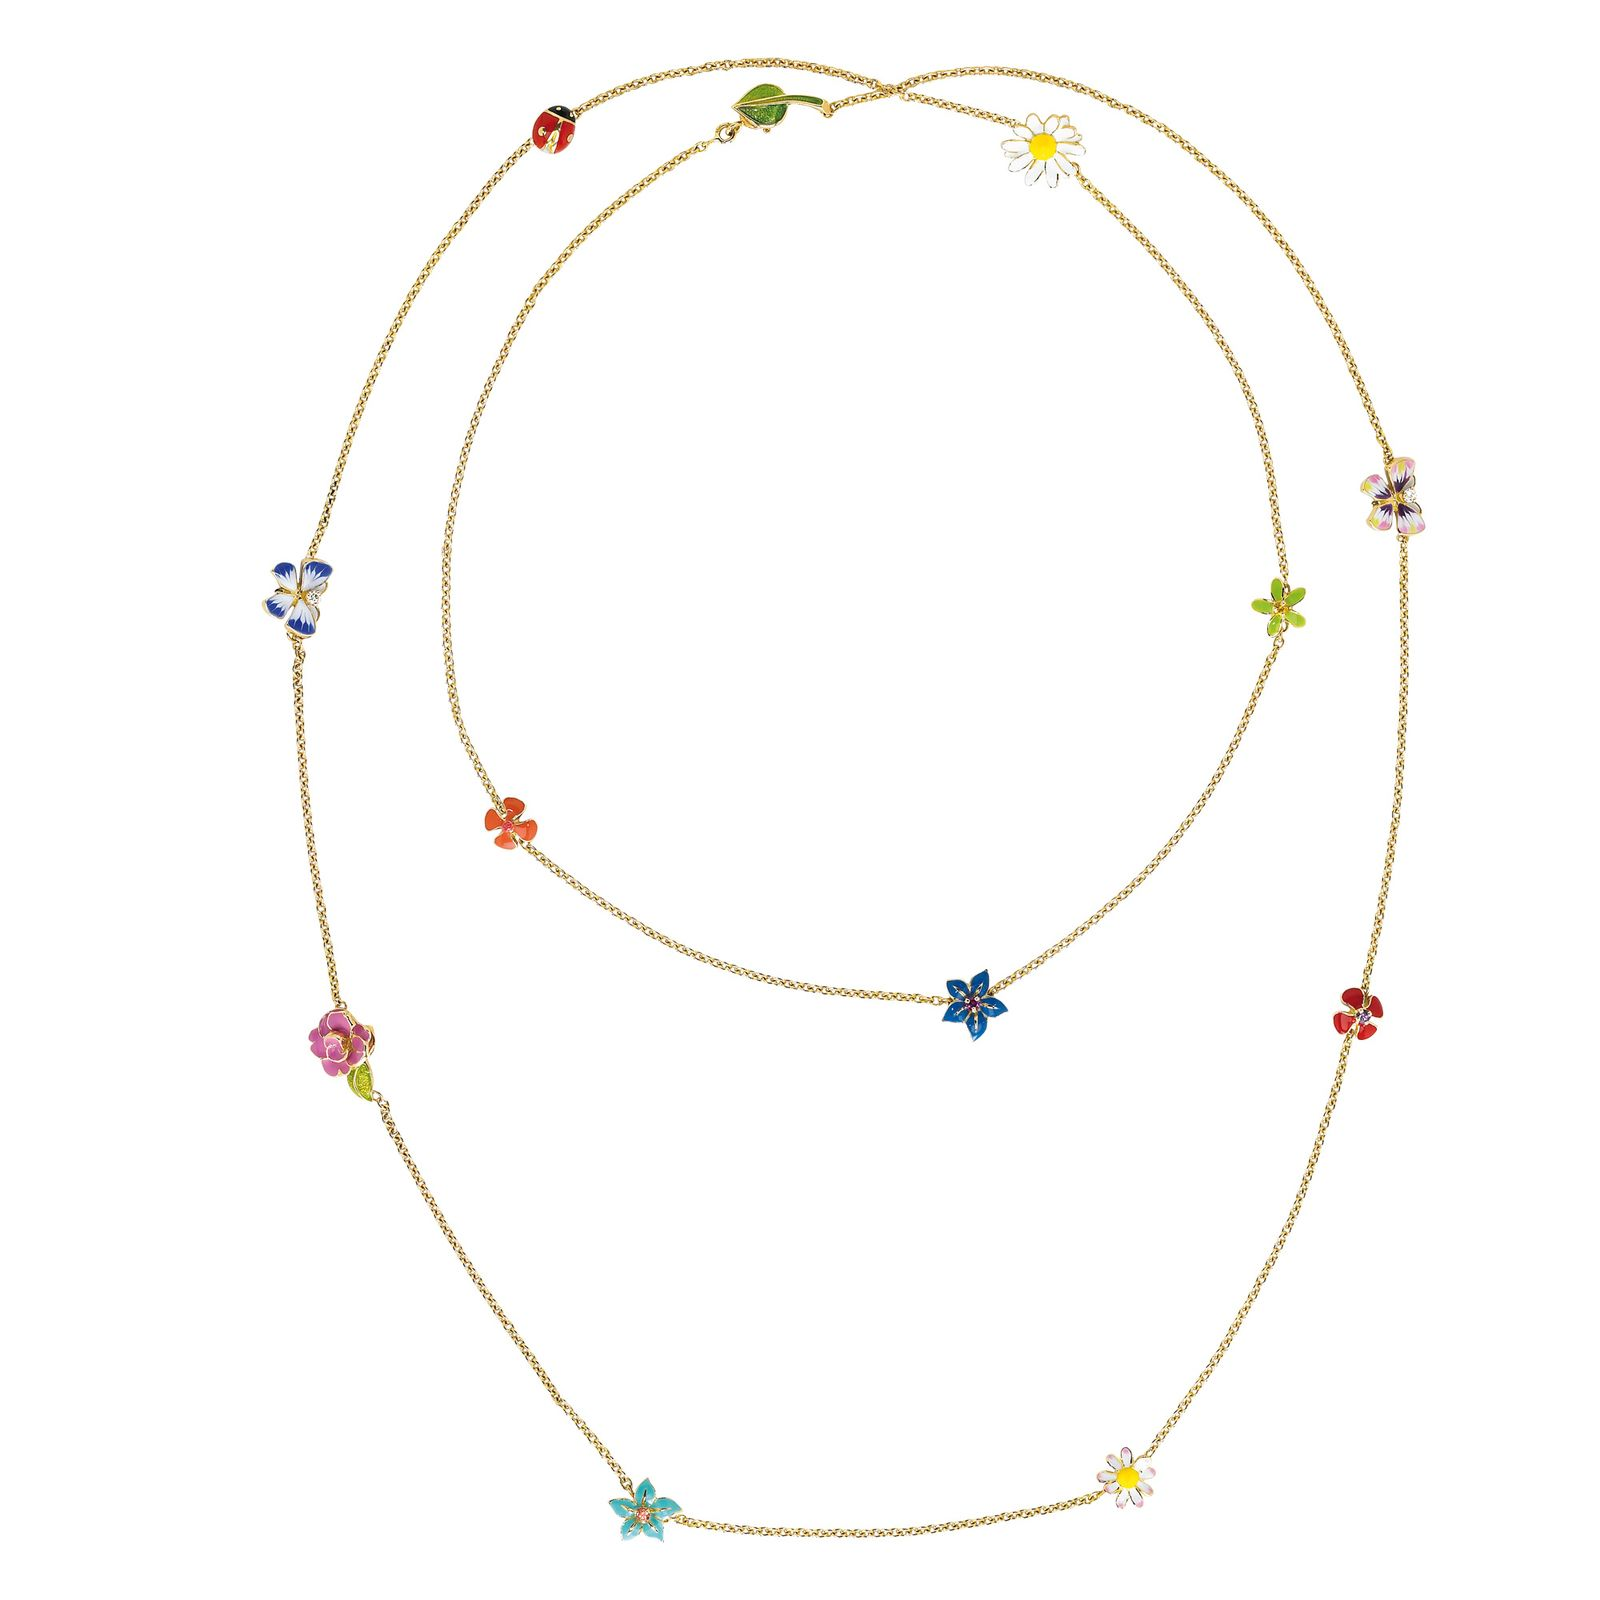 Gojee - Diorette Floral Necklace by Dior